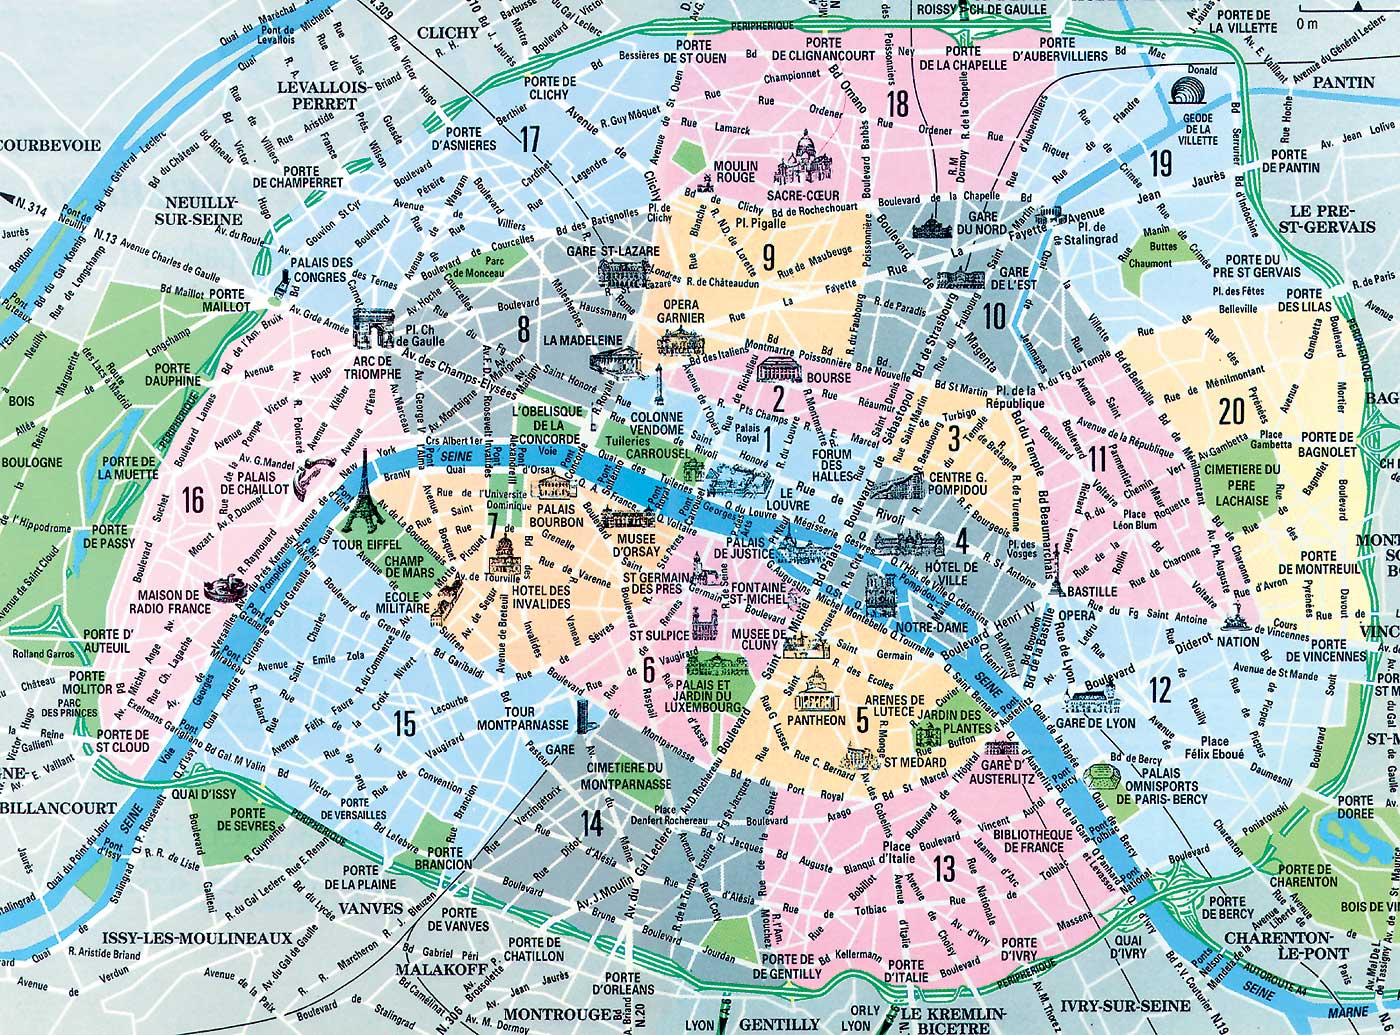 Plan de paris - carte